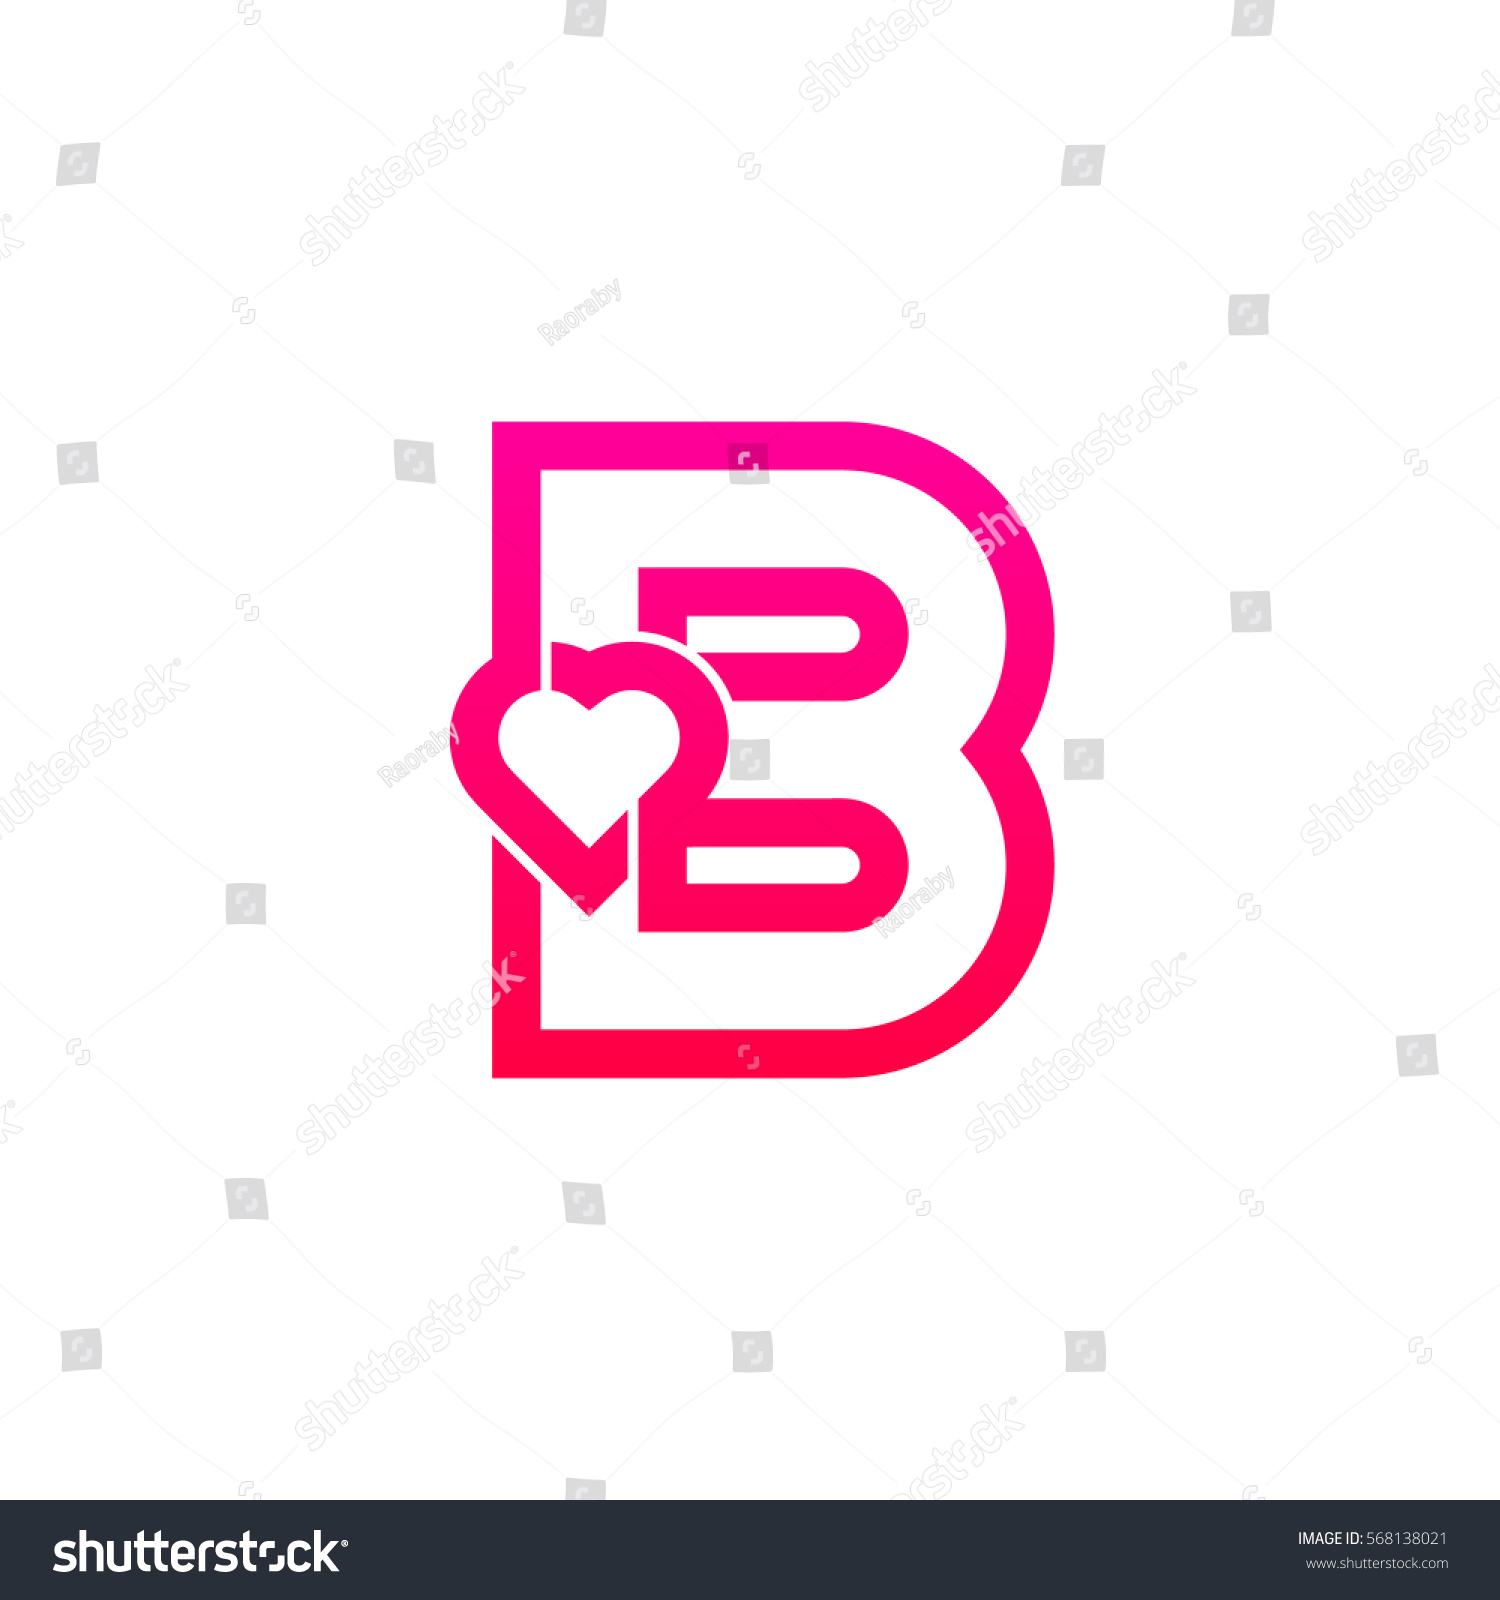 Letter B Heart Logo Pink Color Valentine Day Stock Vector (Royalty ...